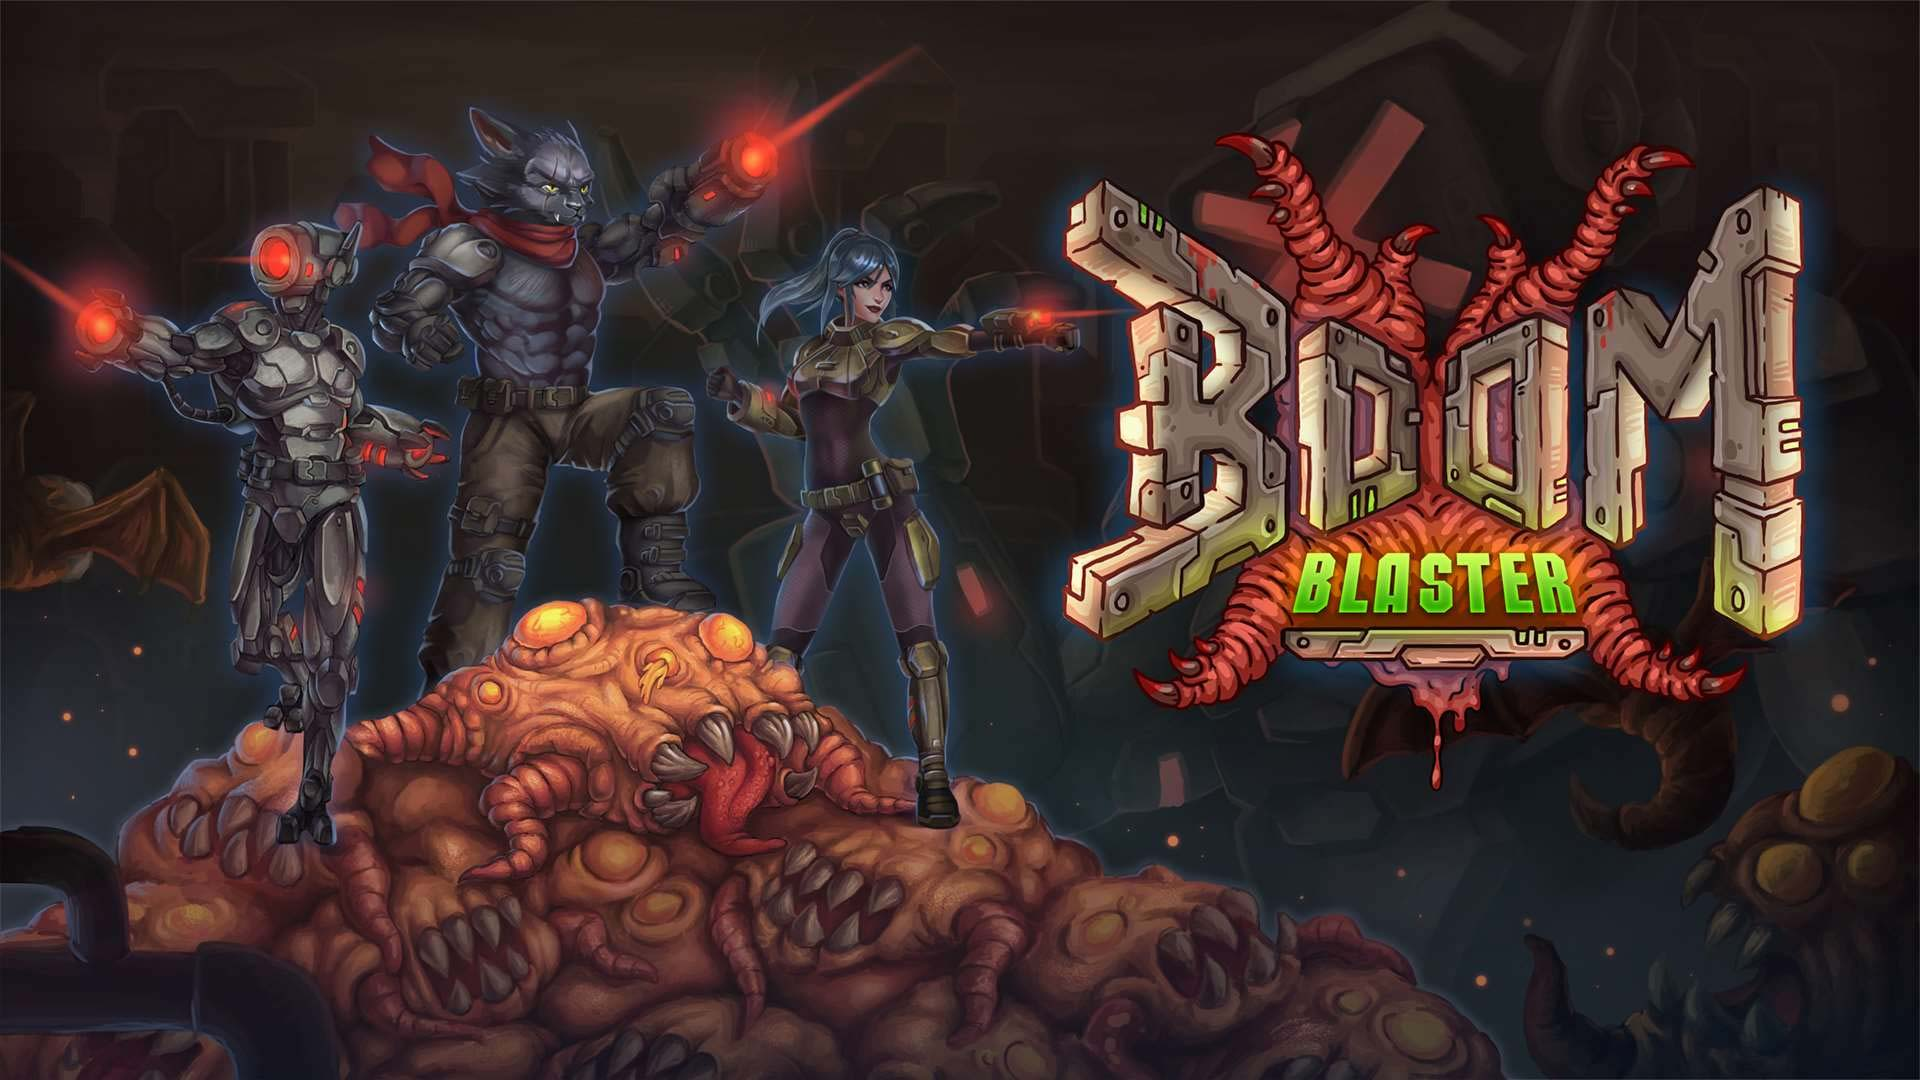 Boom Blaster is now available to pre-order digtally on Xbox One And Xbox Series X|S